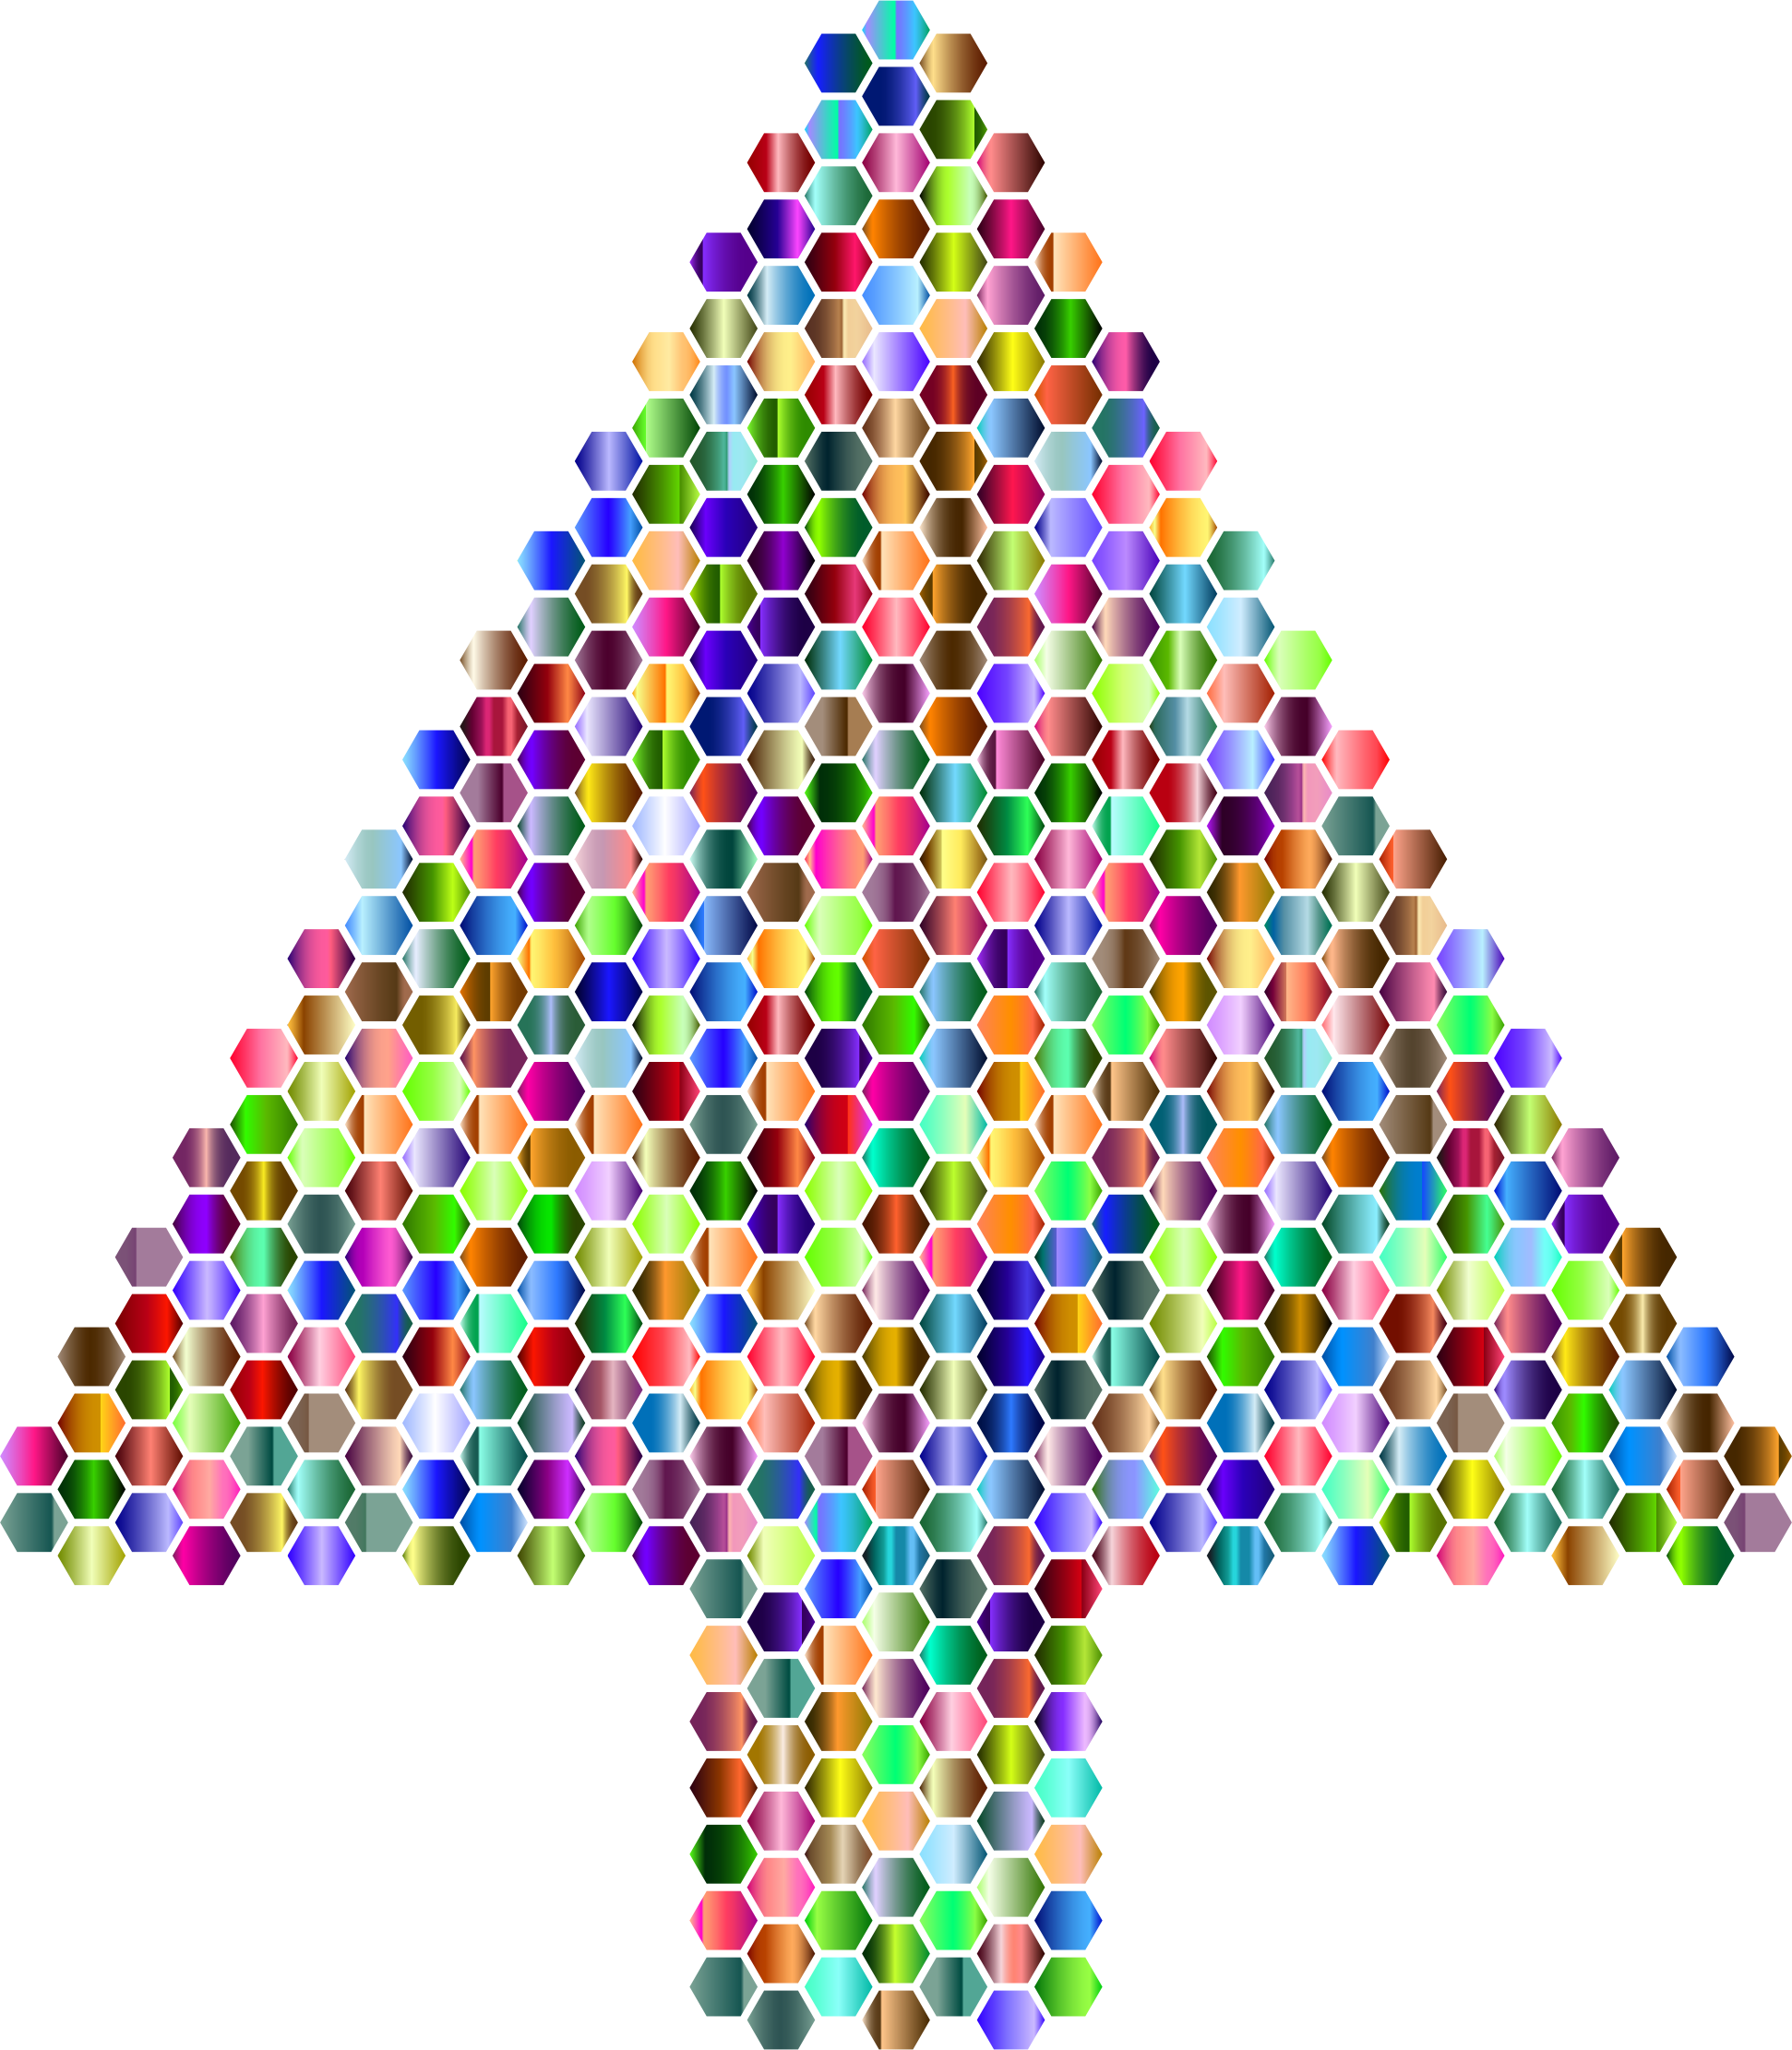 Prismatic Hexagonal Abstract Christmas Tree 5 by GDJ